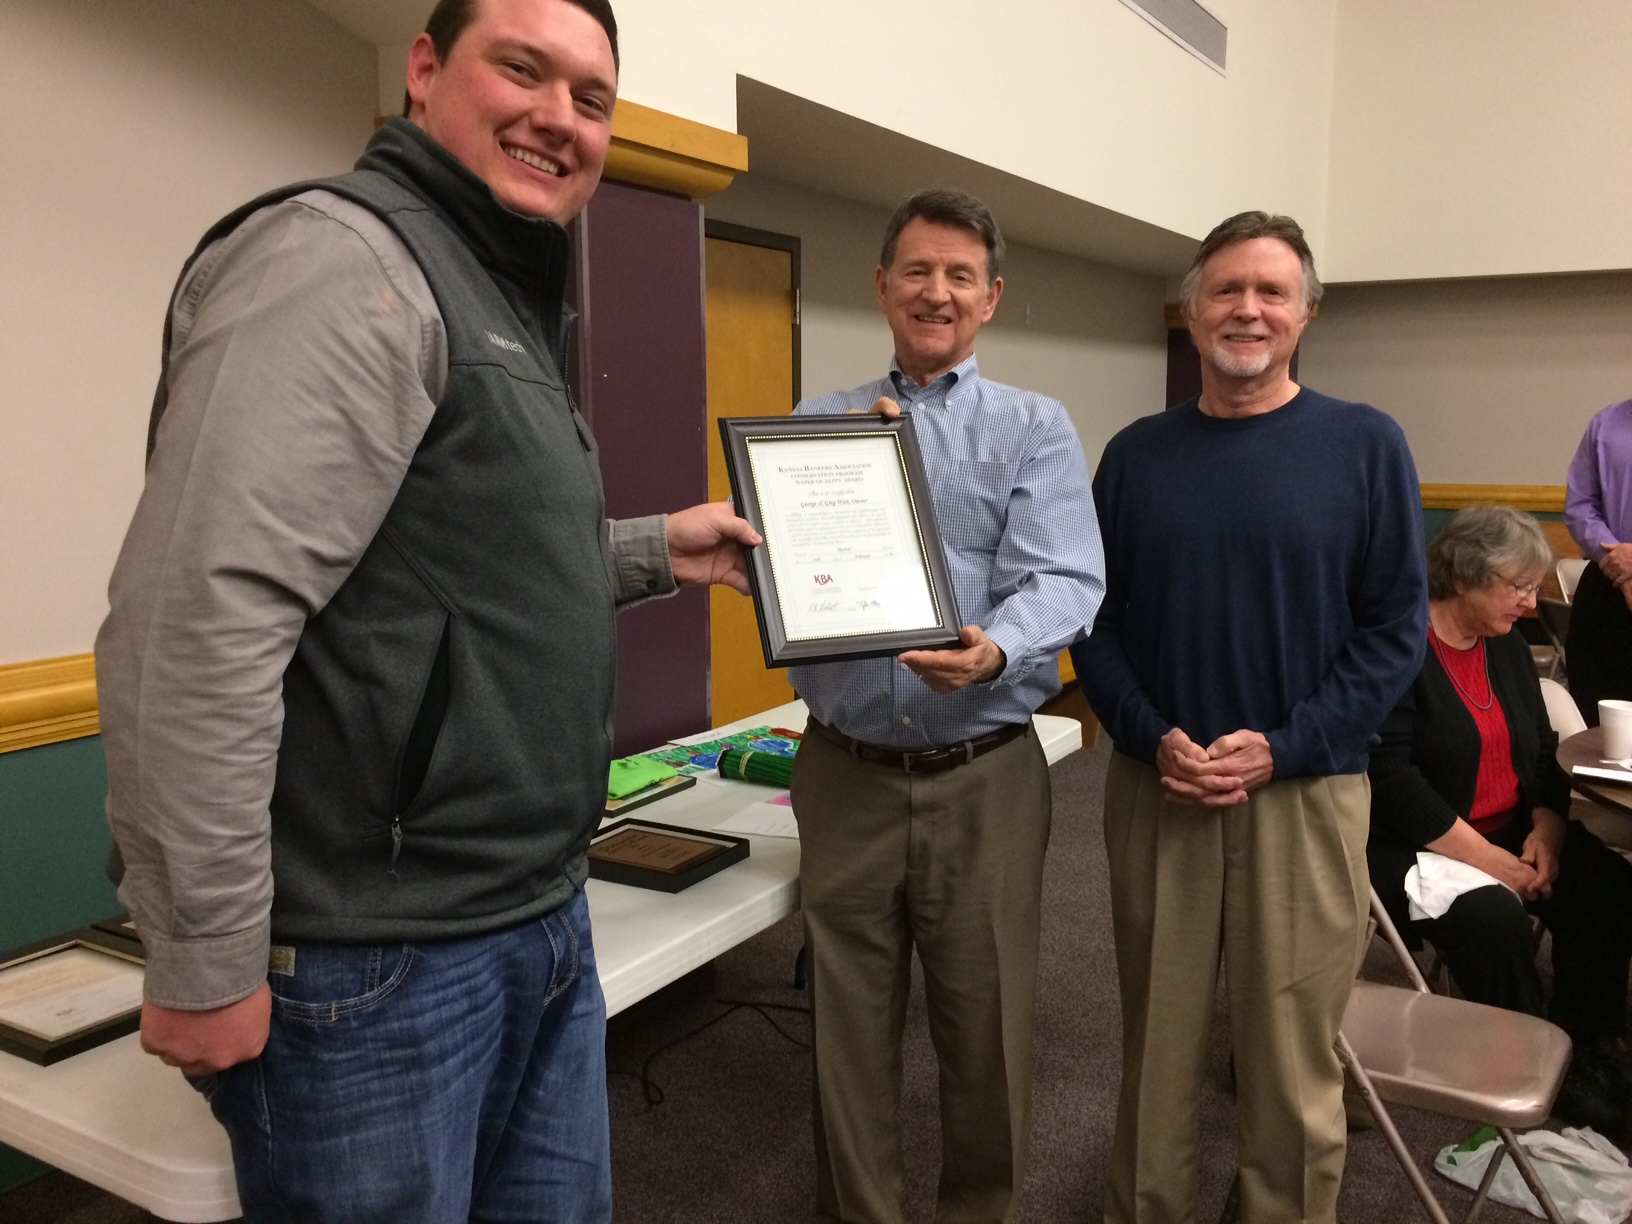 >The Wait brothers, George and Greg of Prairie Village, were co-recipients of the 2017 of the Kan­sas Bankers Association Soil Conservation Award for Marion County.